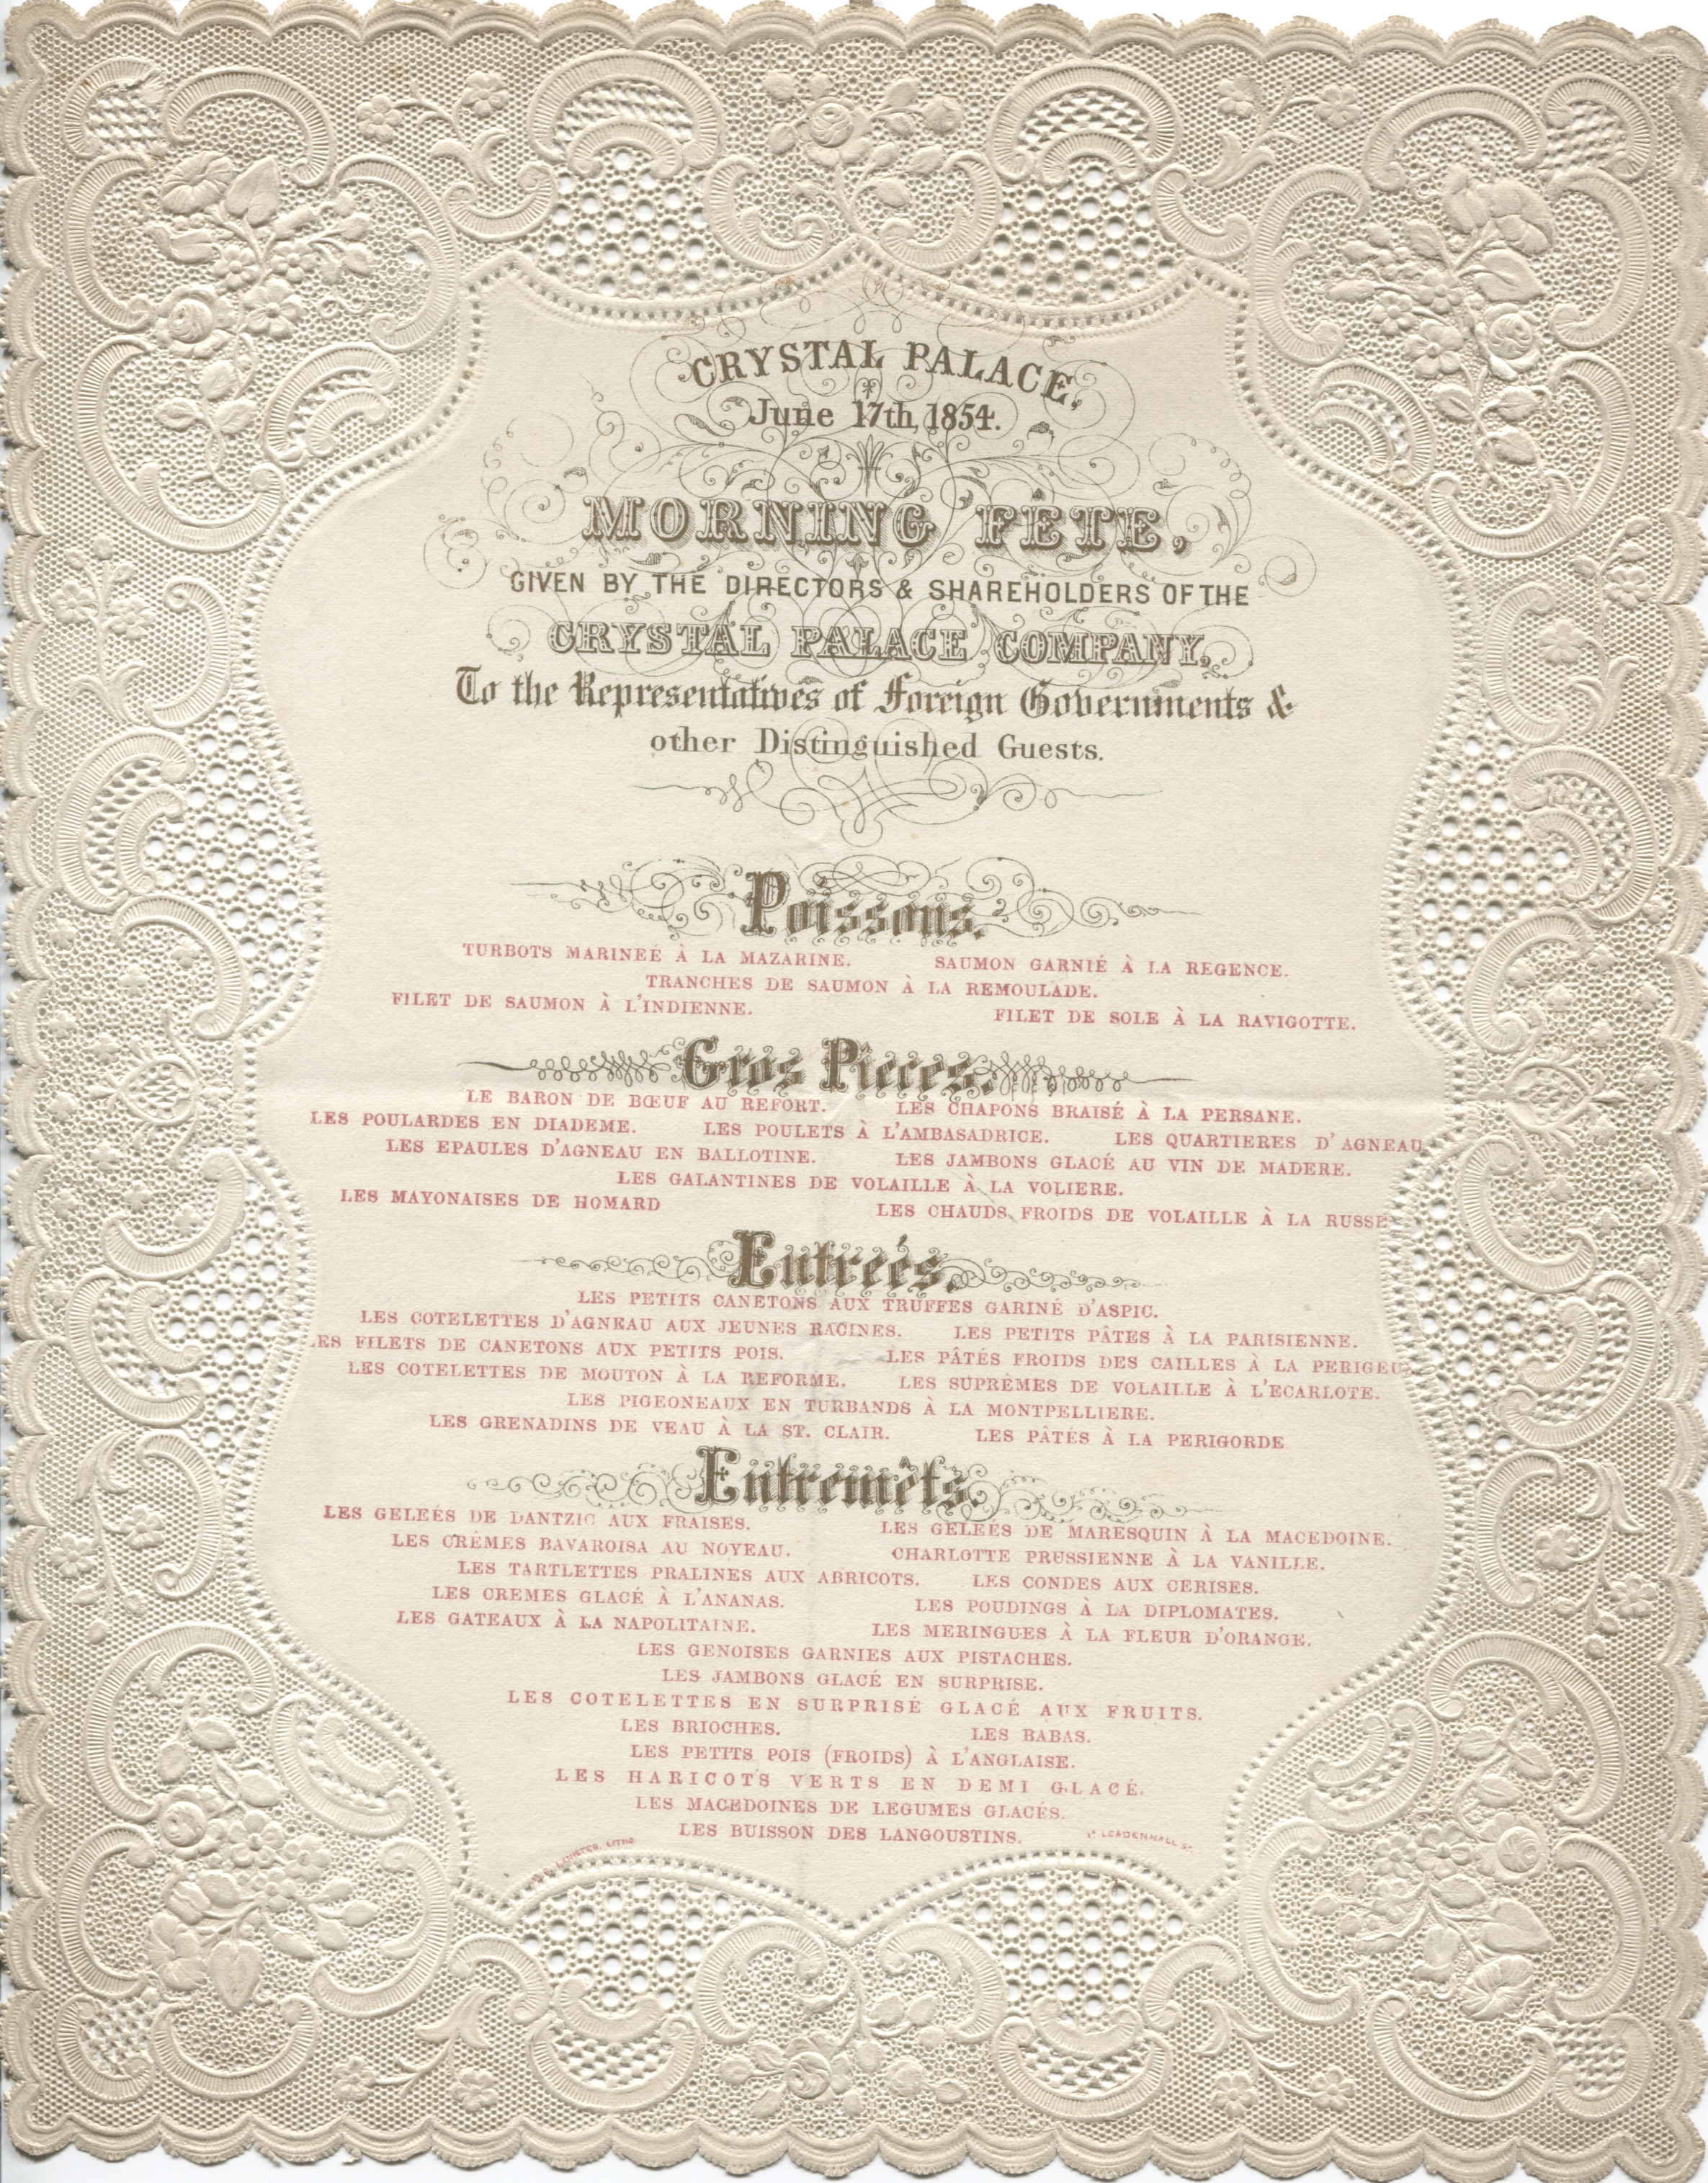 CRYSTAL-PALACE-MENU-40210-1.jpg